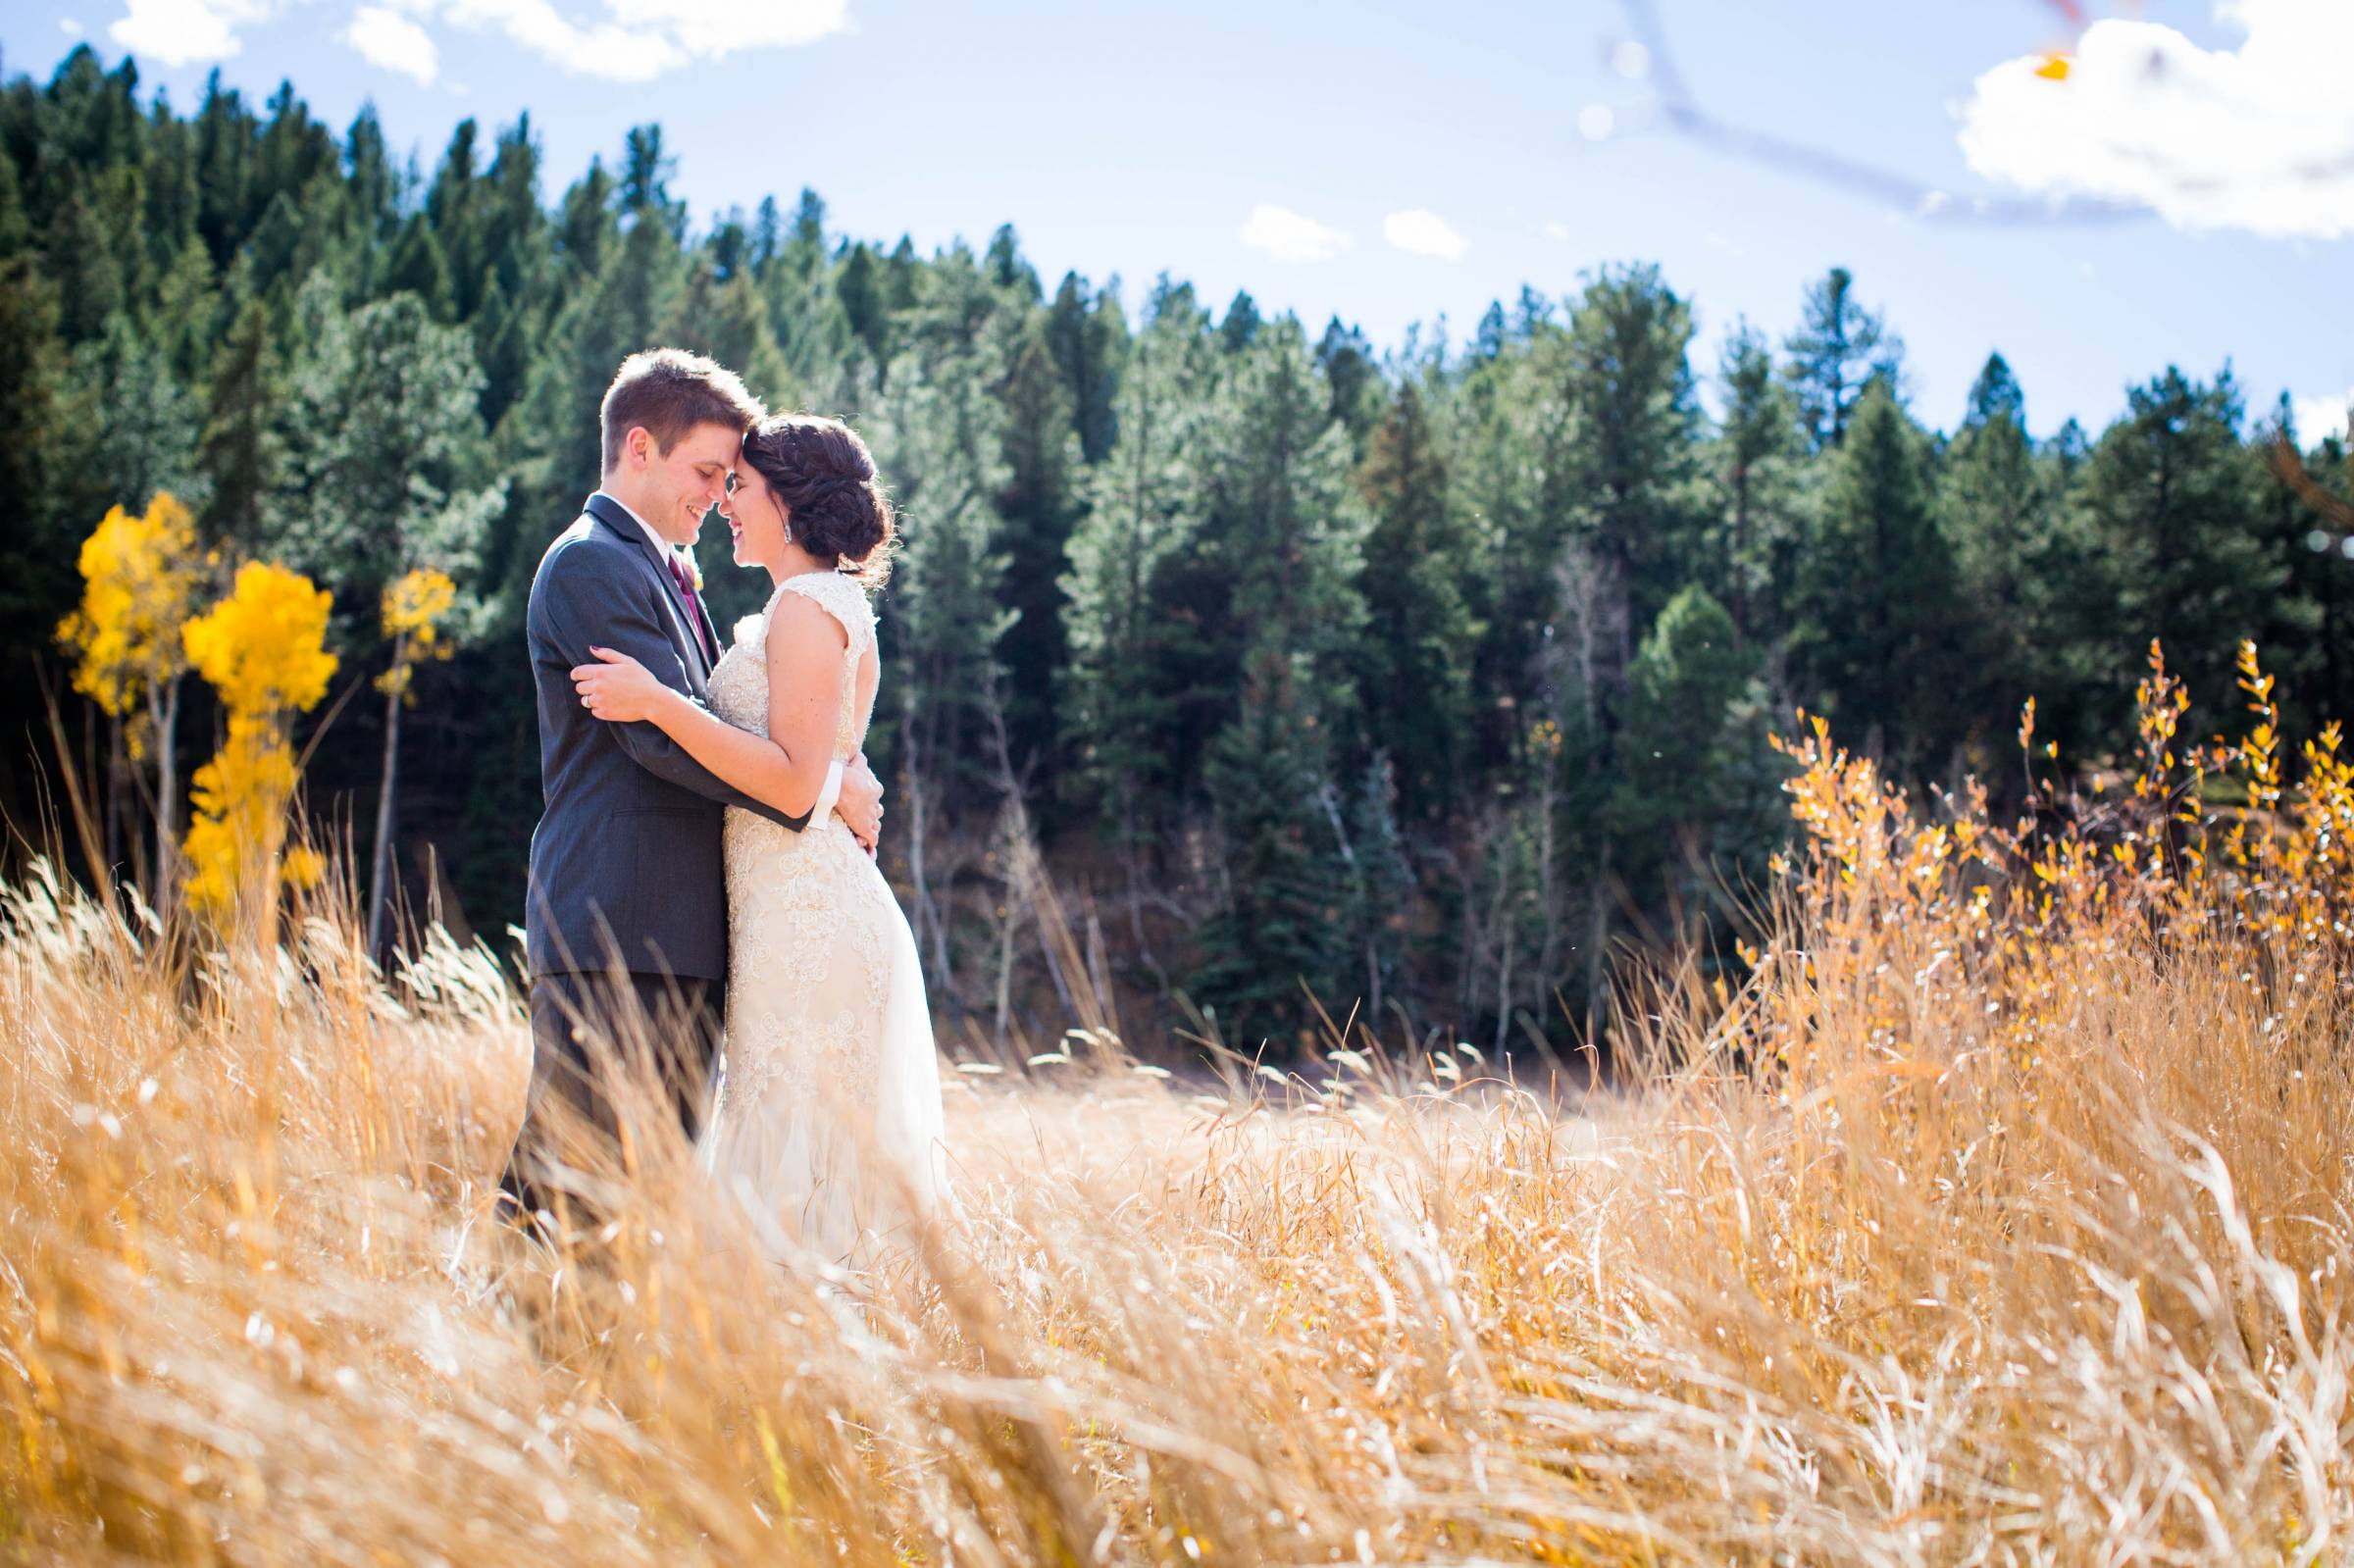 Bride and groom portrait at their Rocky Mountain wedding planned by Glow Events